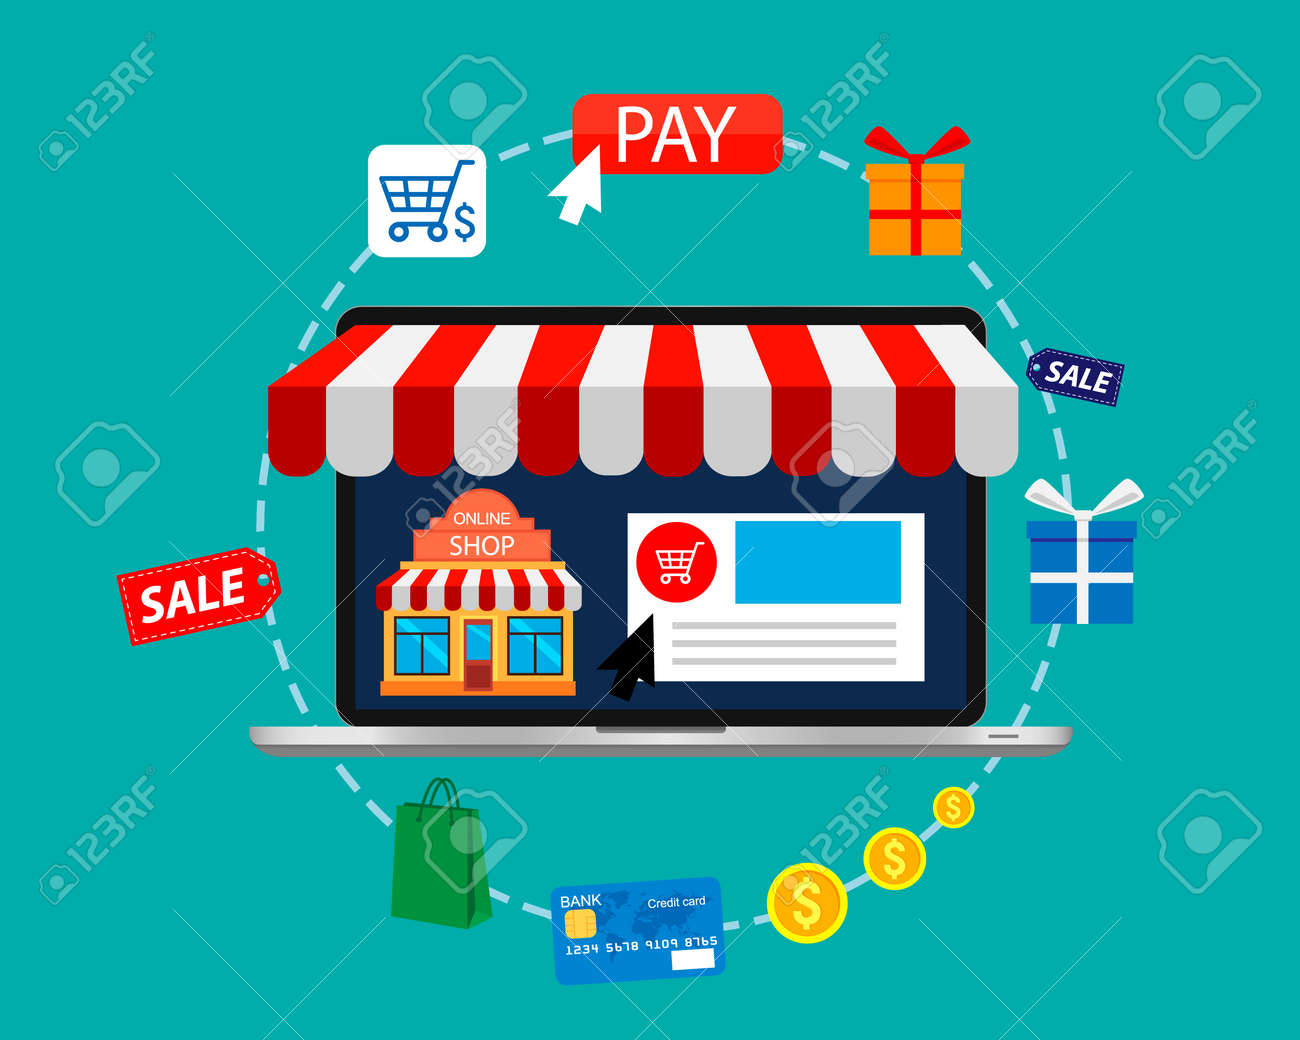 Online shopping. E-commerce pay and online shopping. Mobile shopping concept. Vector illustration. - 159881200